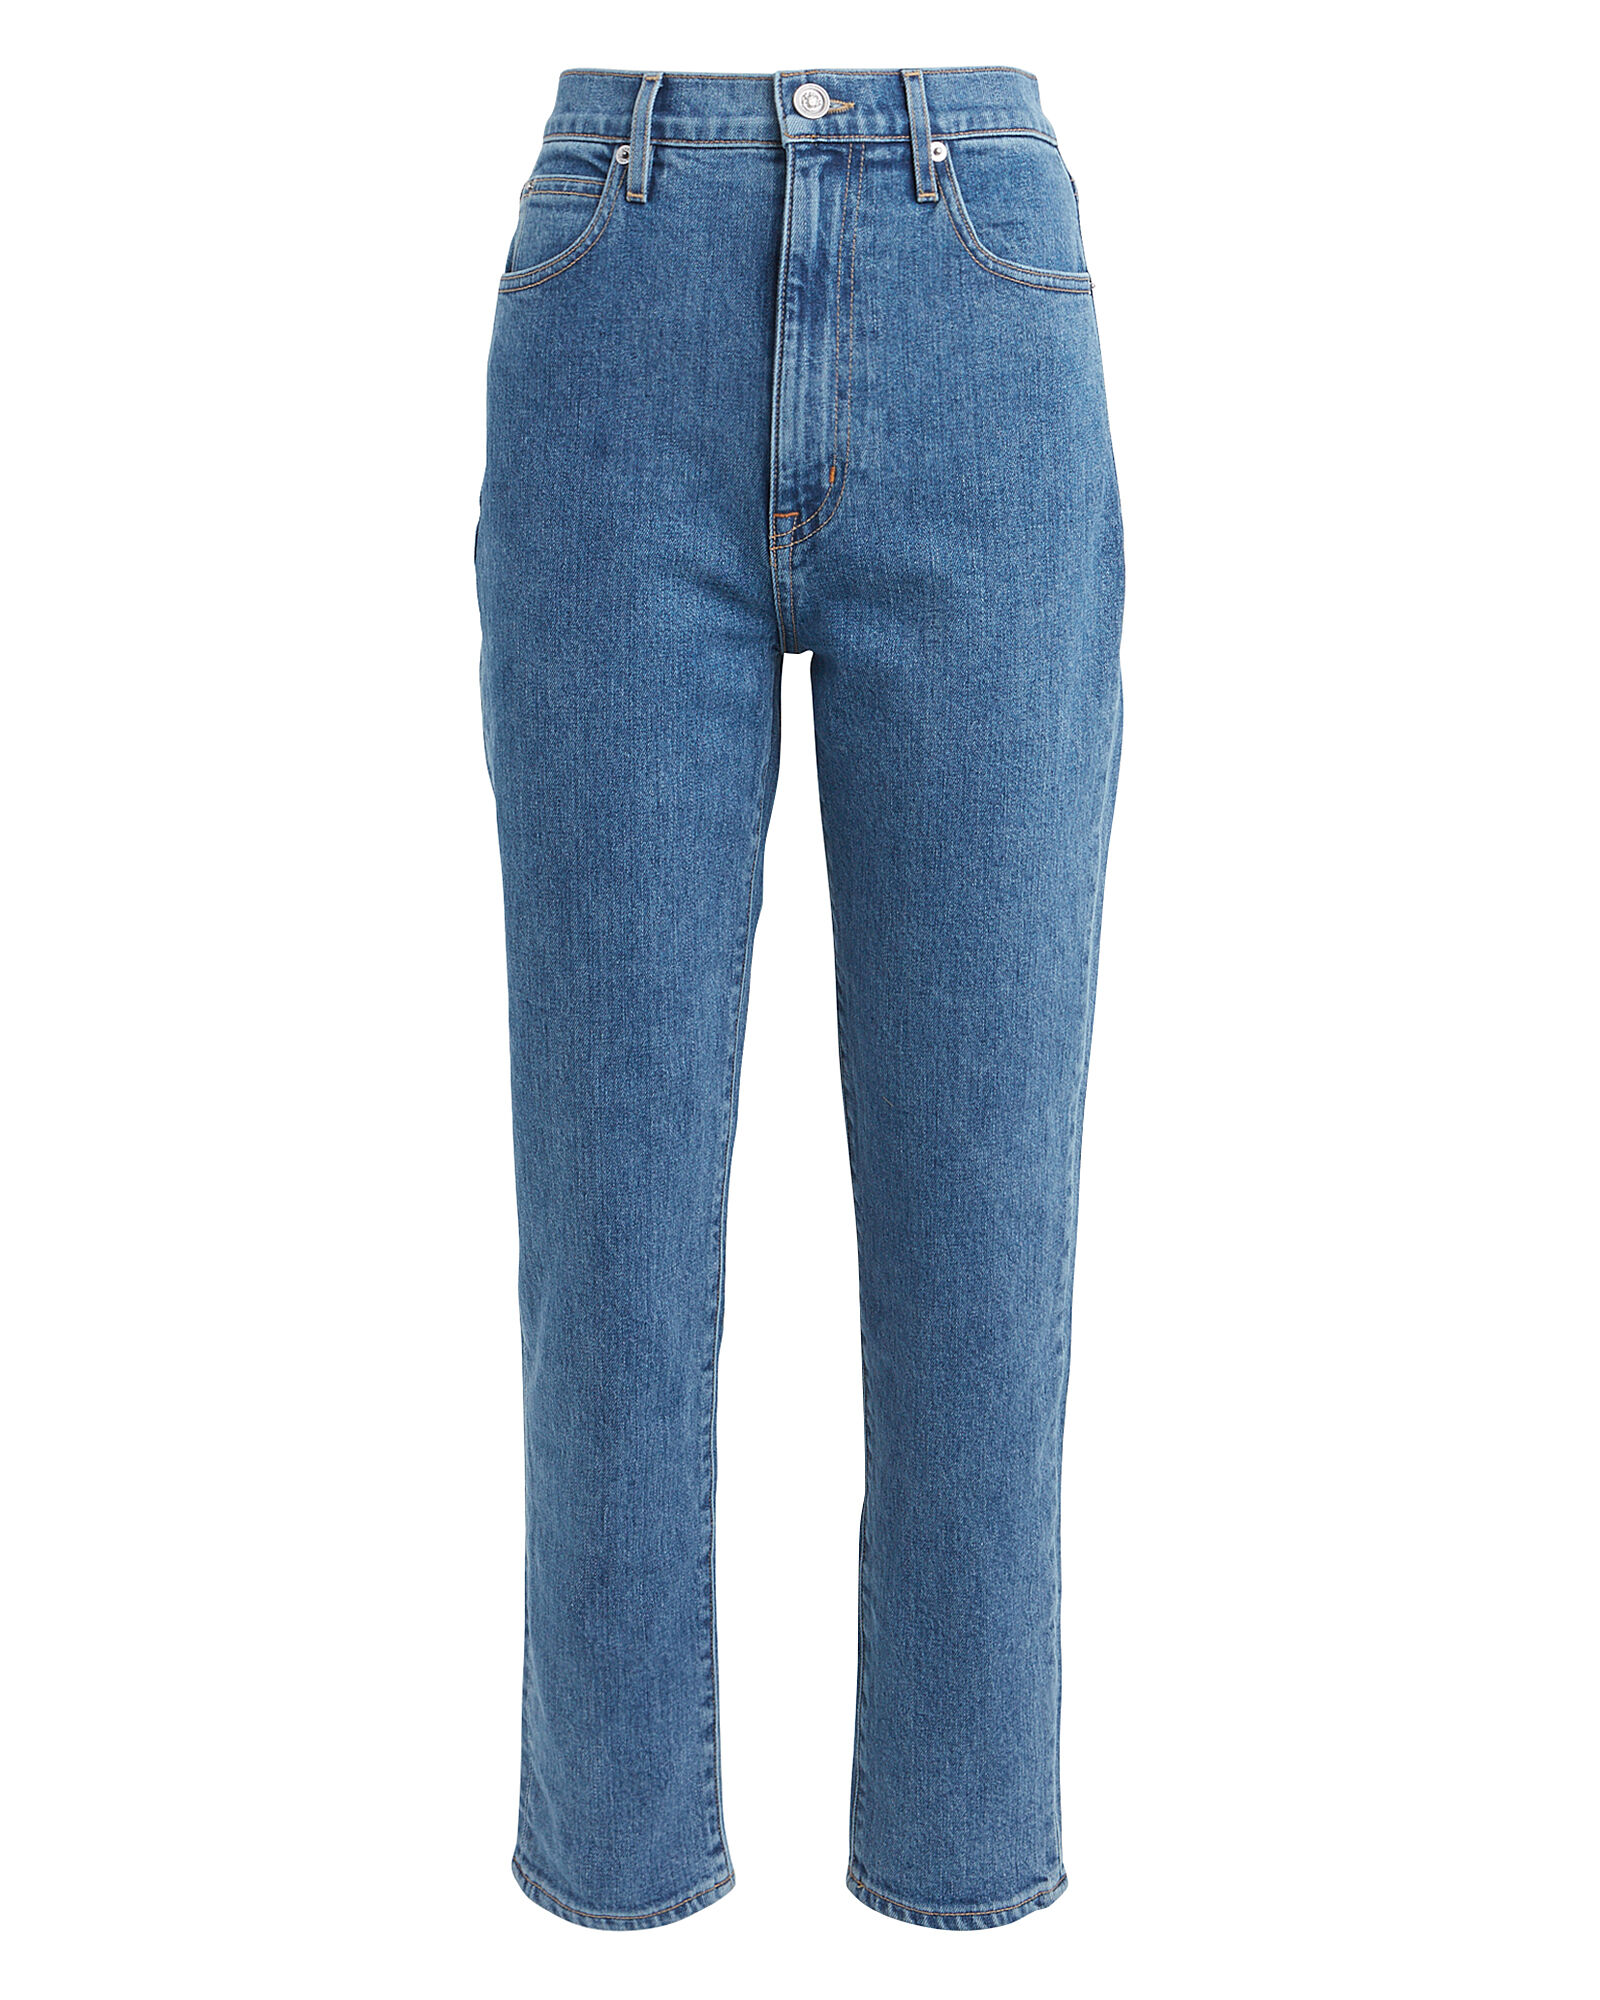 Beatnik Slim High-Rise Jeans, MID-BLUE DENIM, hi-res